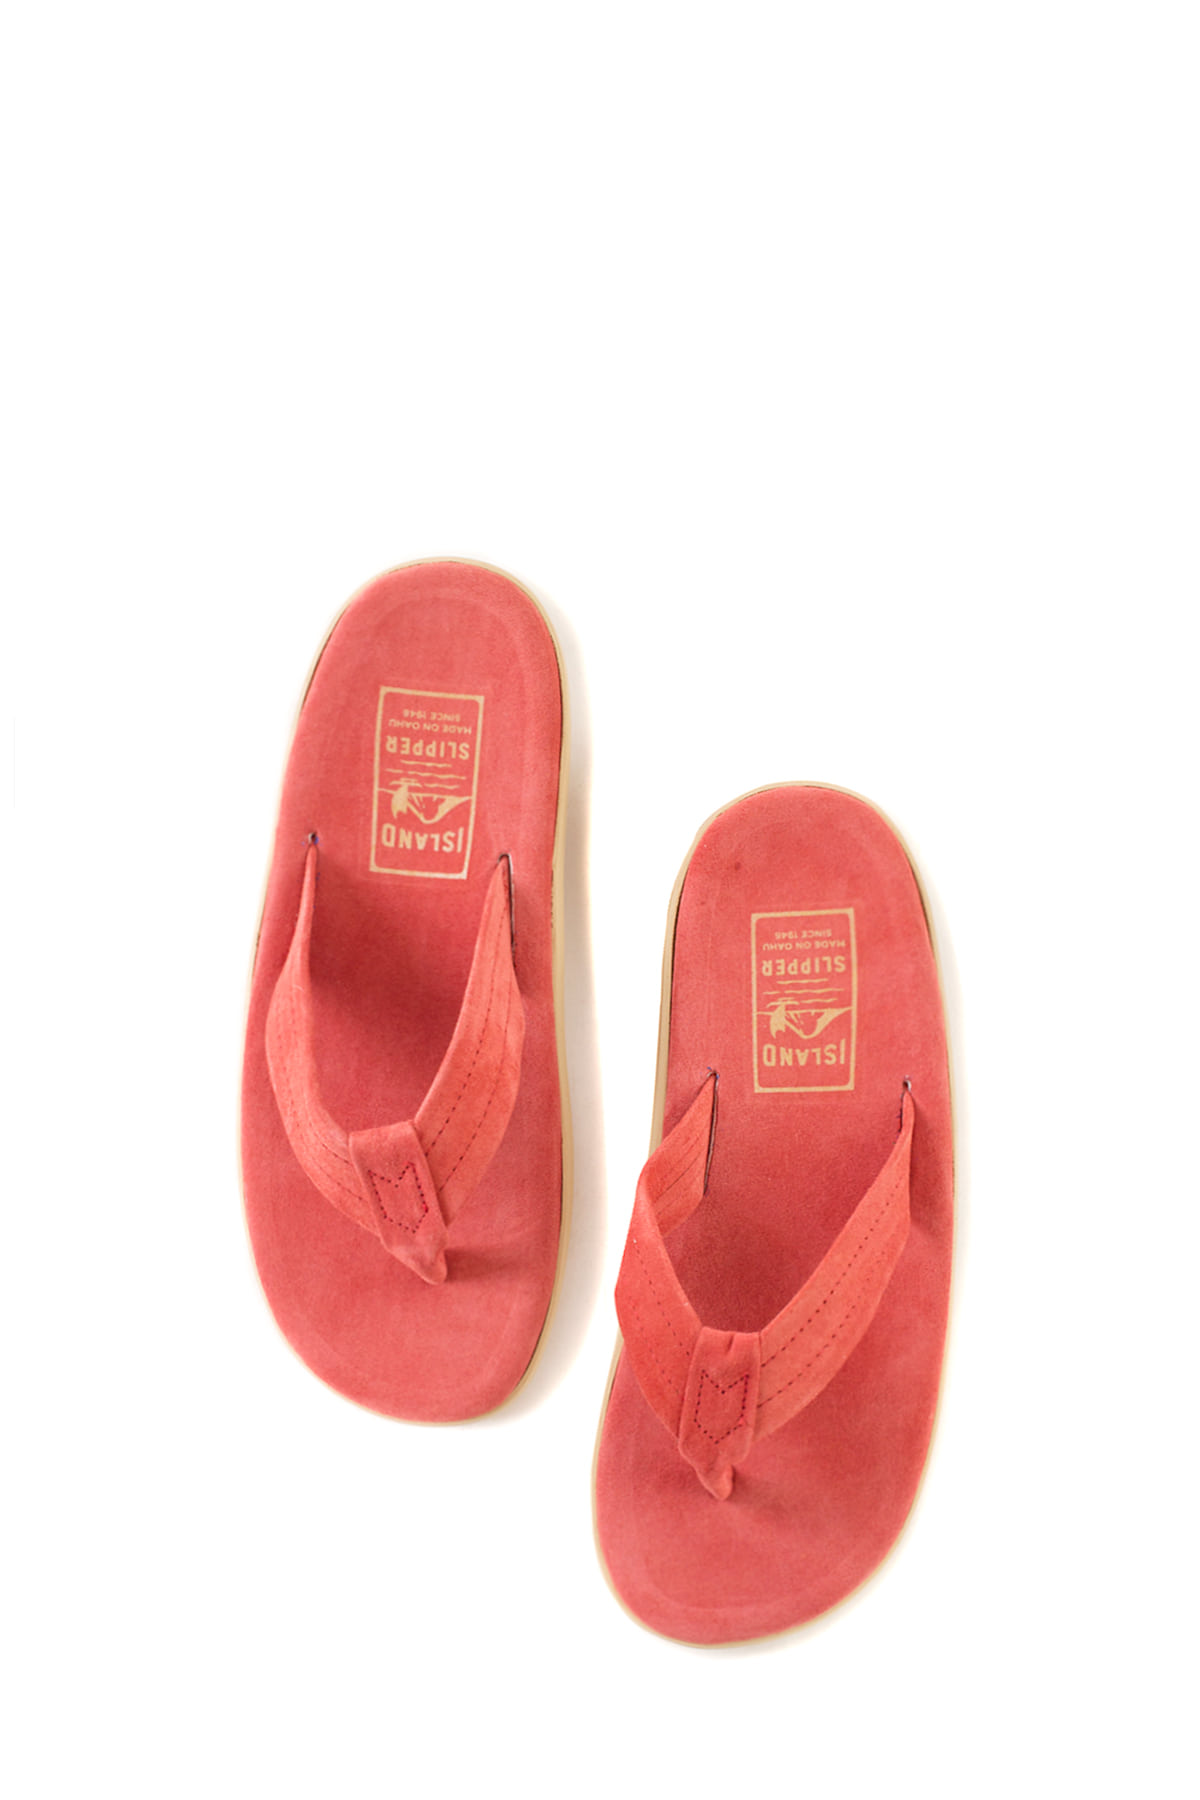 ISLAND SLIPPER : PT203 (Red Suede)